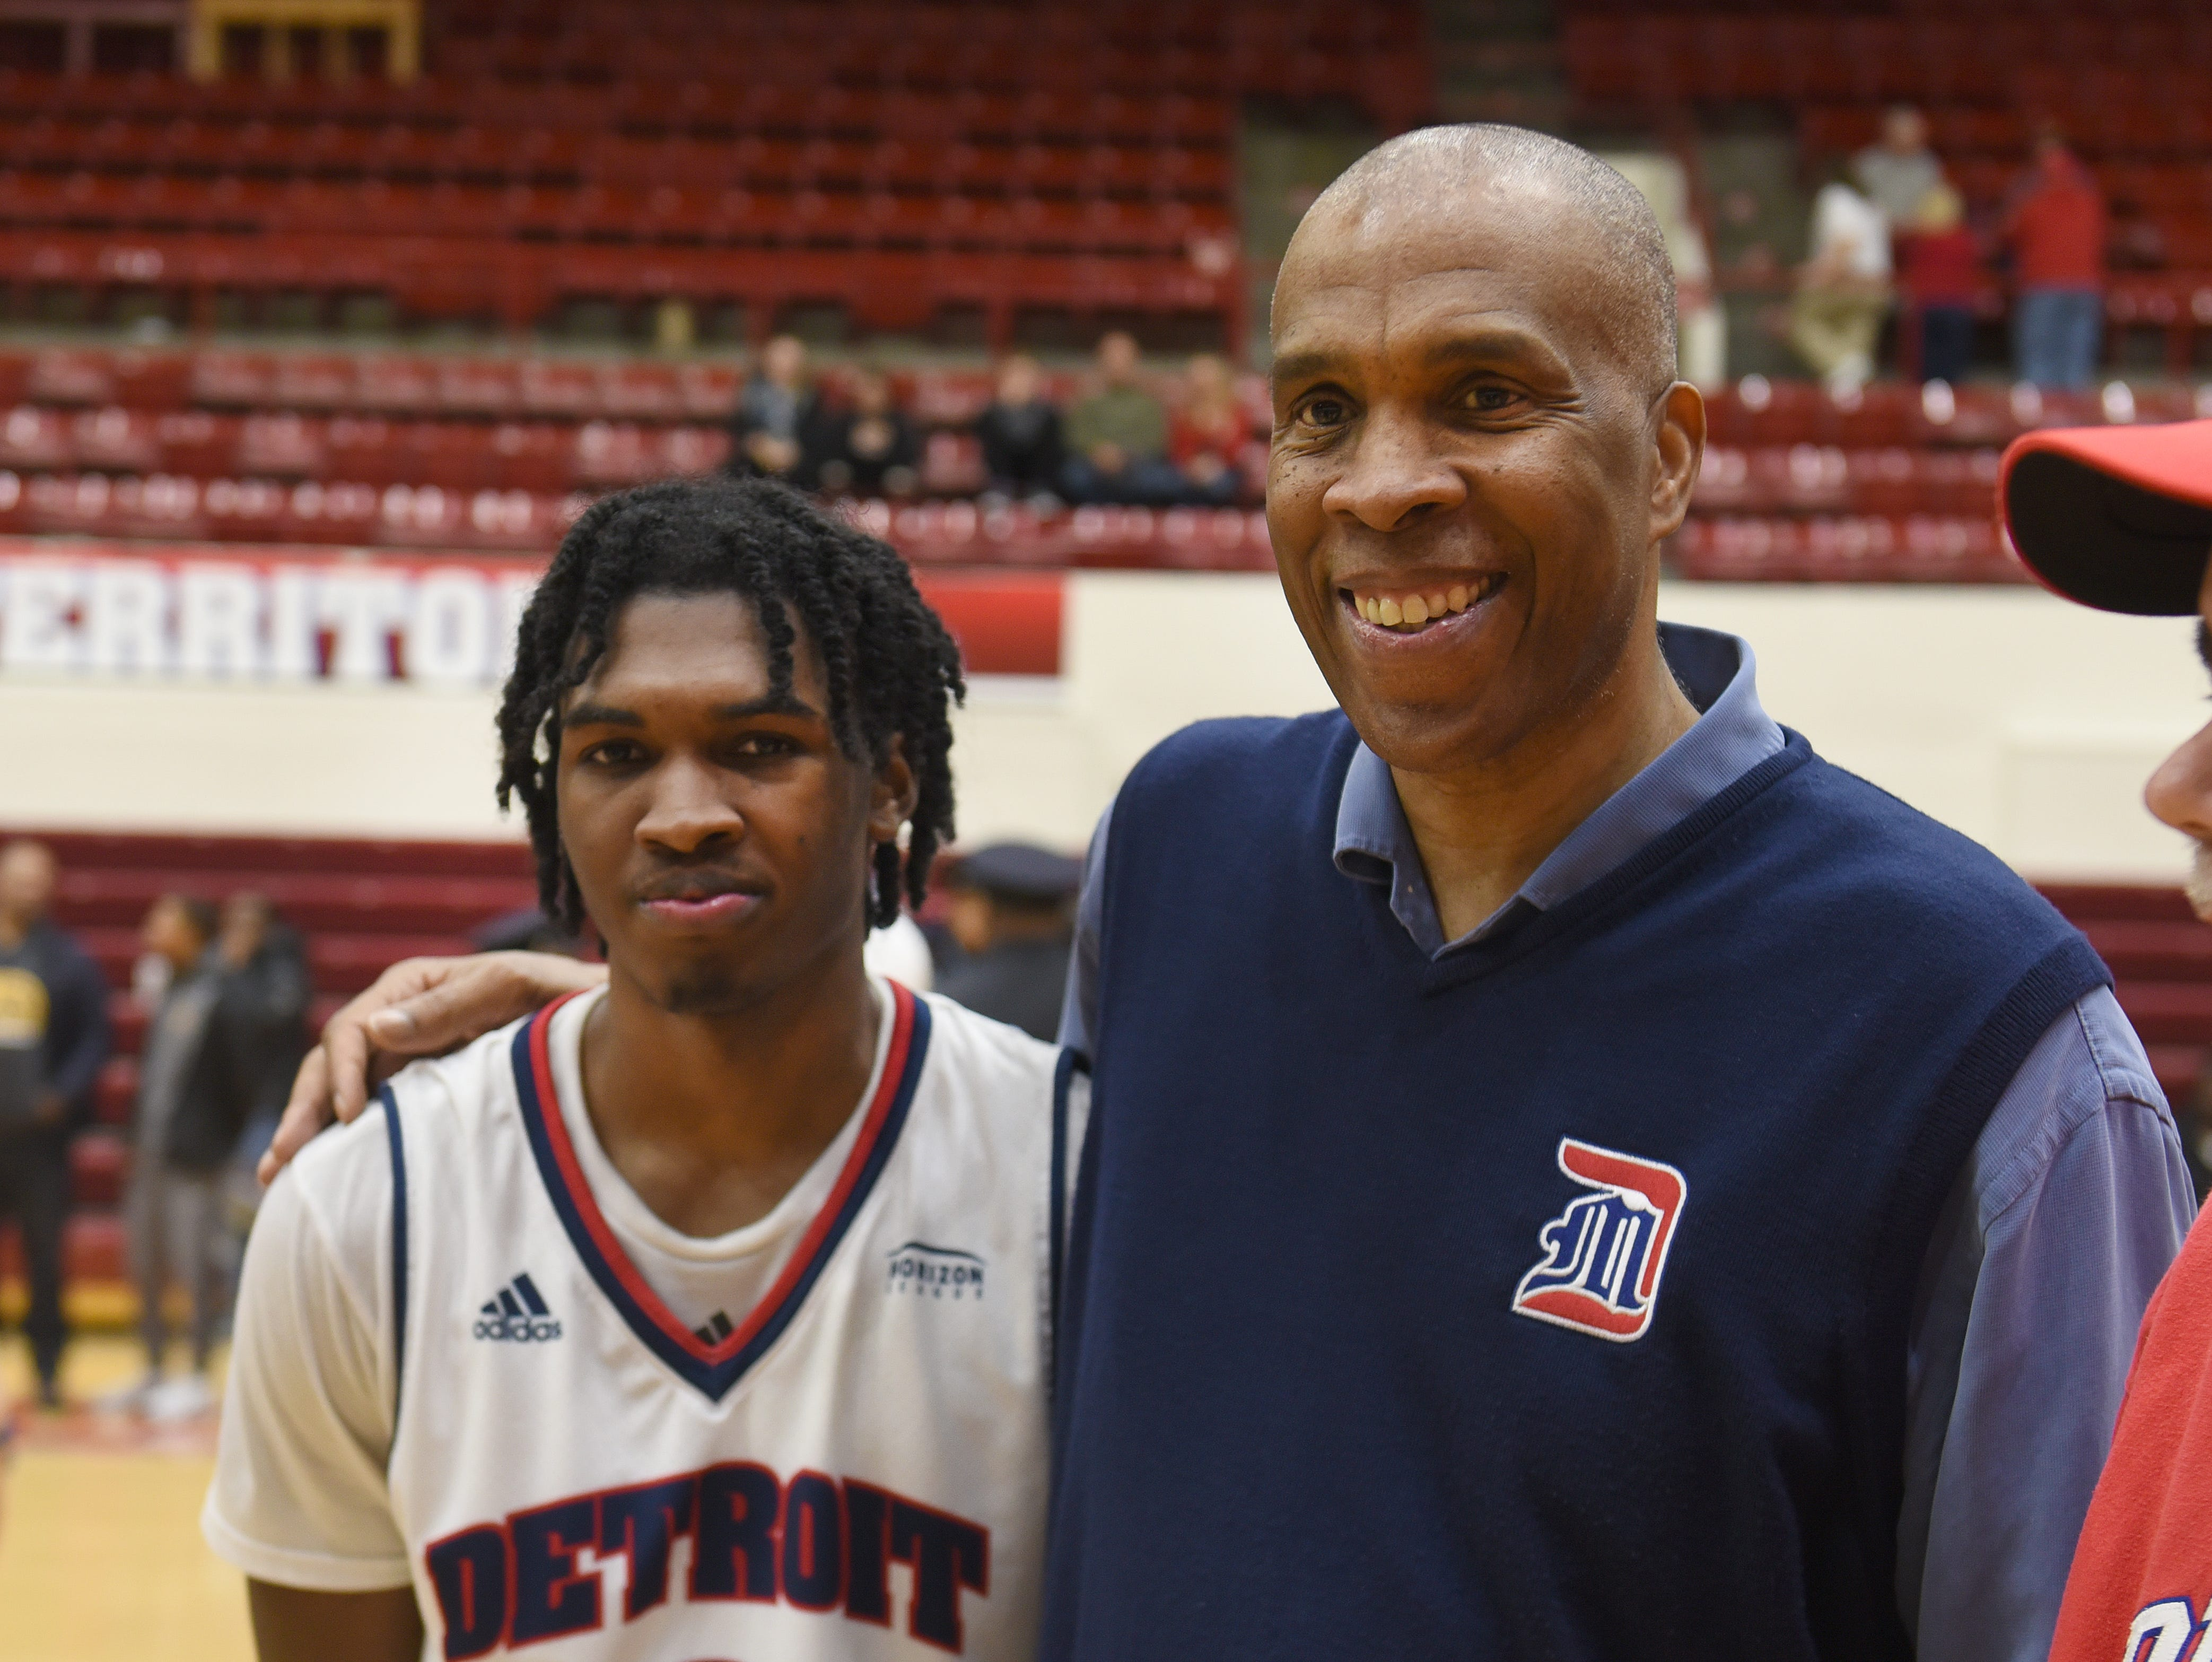 UDM freshman Antoine Davis is the leading scorer for the Titans under his father, head coach Mike Davis, who formerly was the head coach of the Indiana Hoosiers in the Big Ten.